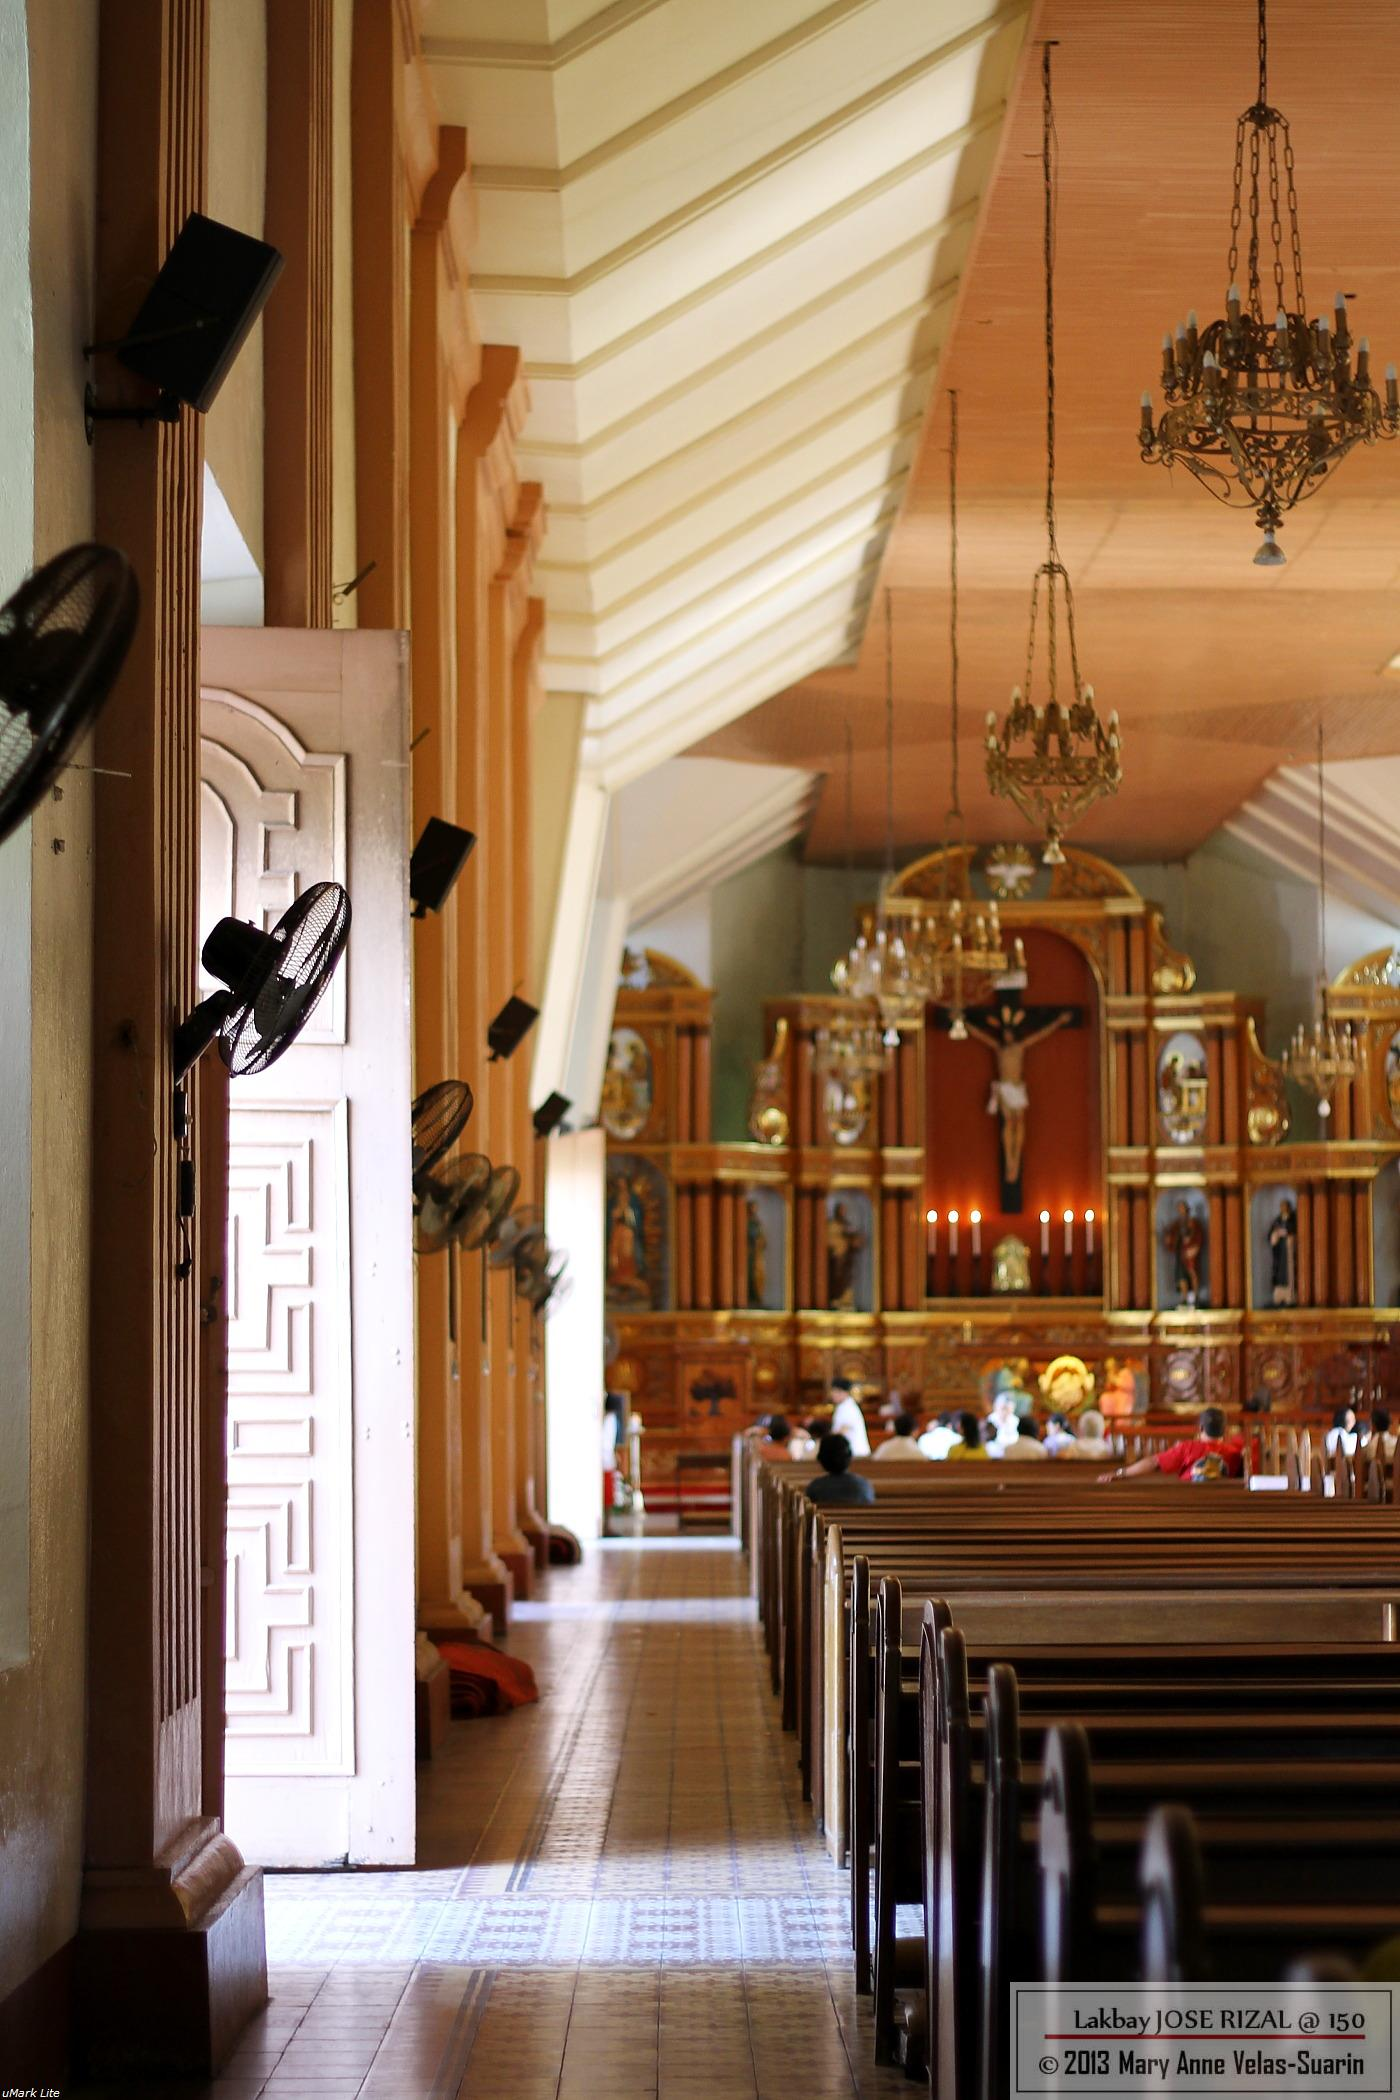 The interiors of San Juan Bautista Church in Calamba City, Laguna. [Photo by Mary Anne Velas-Suarin]